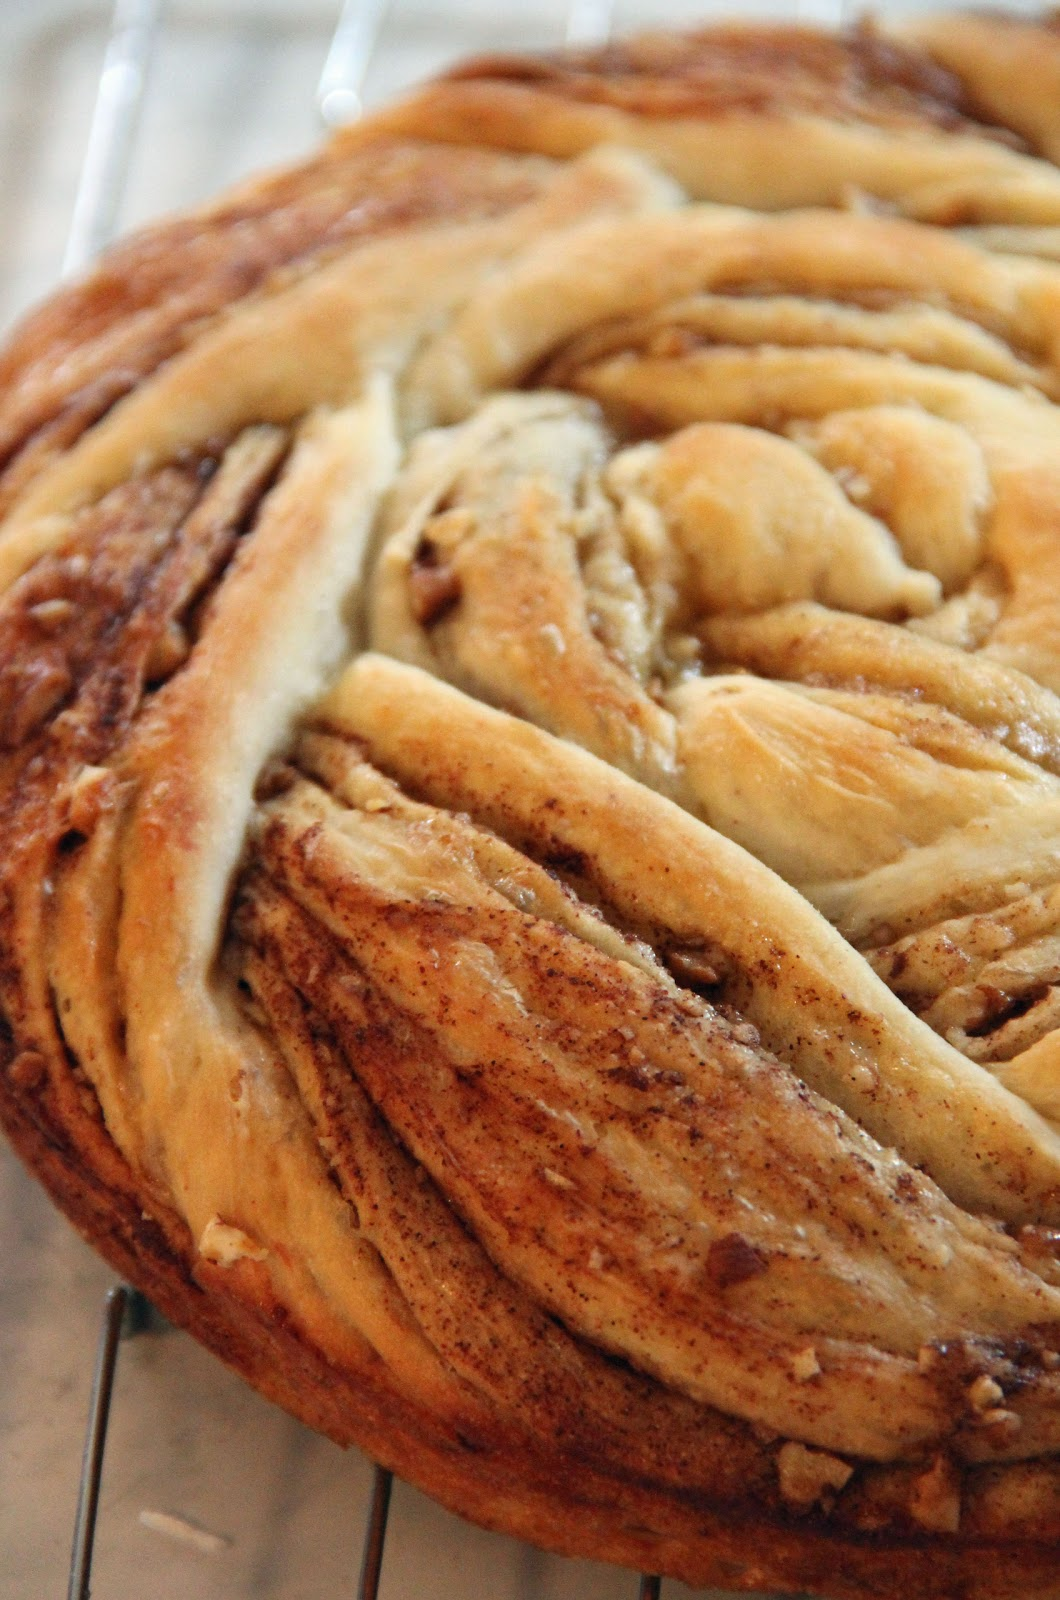 Jo and Sue: Cinnamon Roll Up Bread